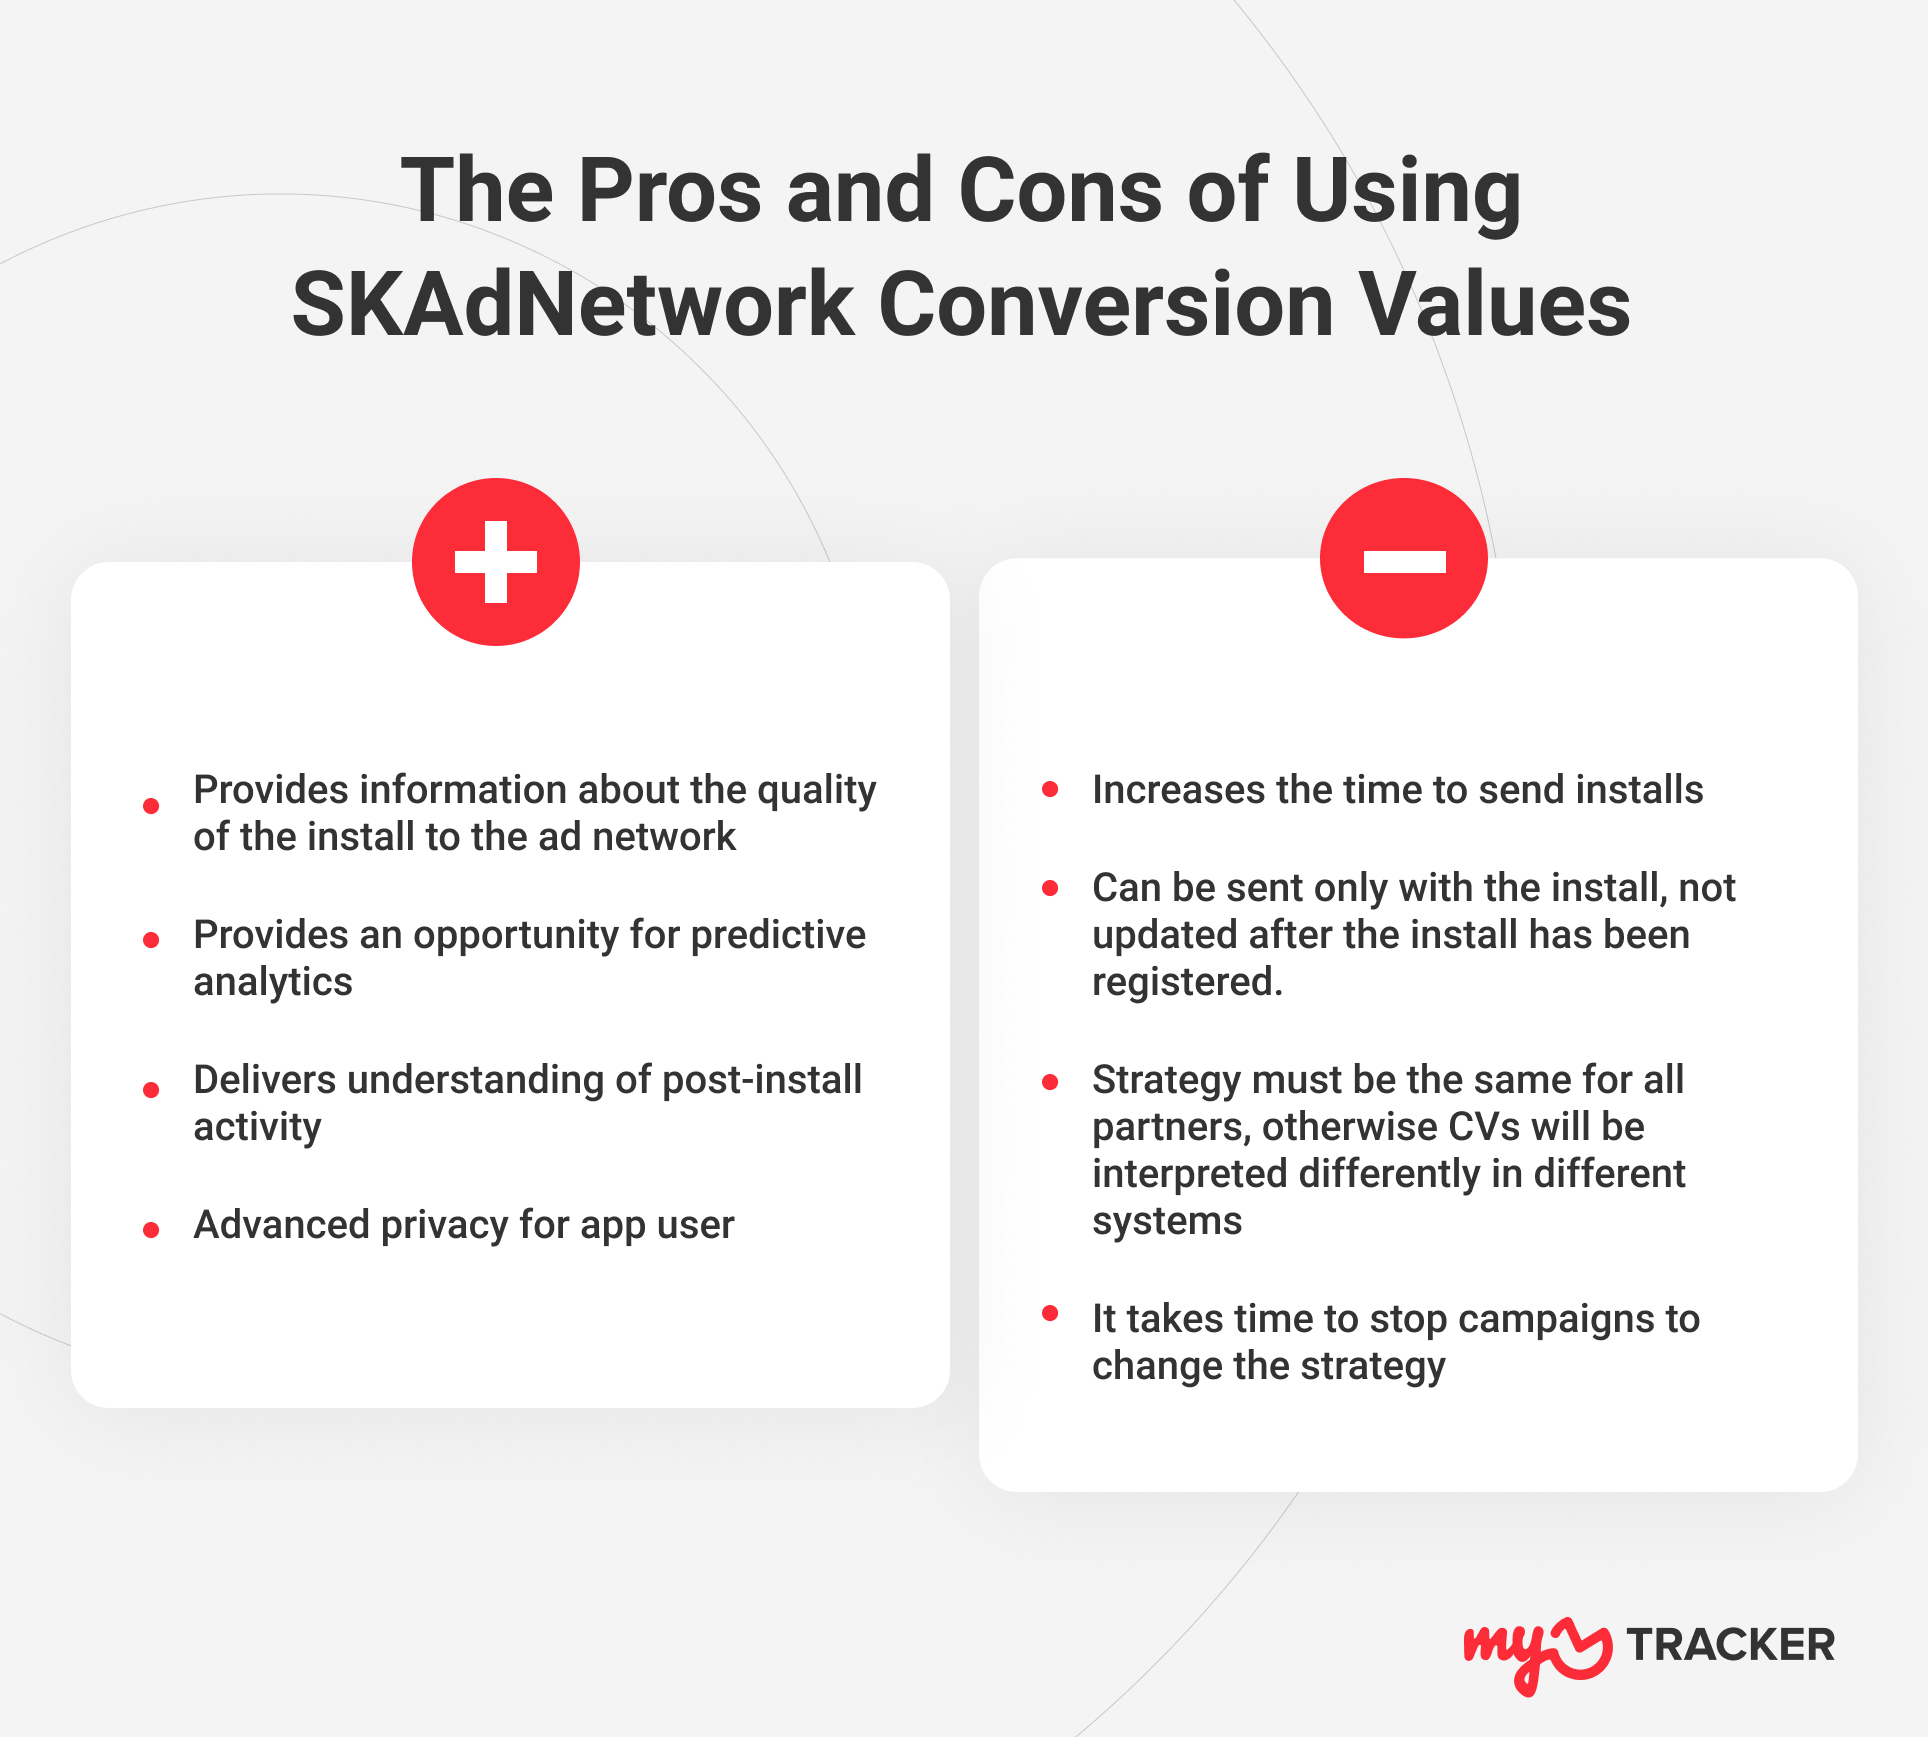 pros and cons of skadnetwork conversion values